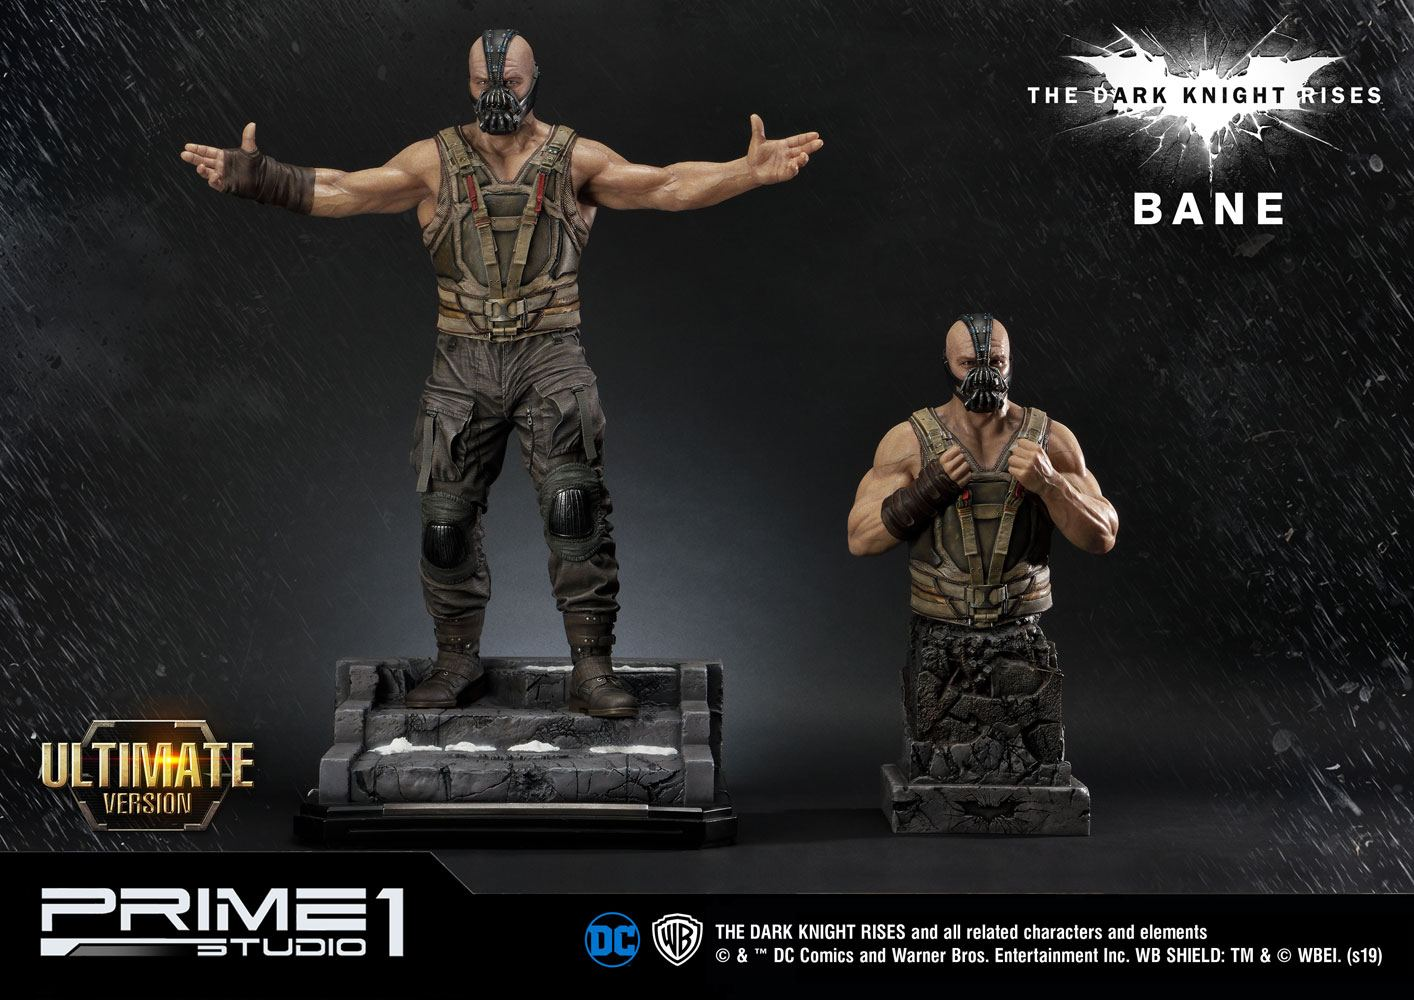 Bane Ultimate Edition Set The Dark Knight Rises 1/3 Scale Statue & Bust by Prime 1 Studio